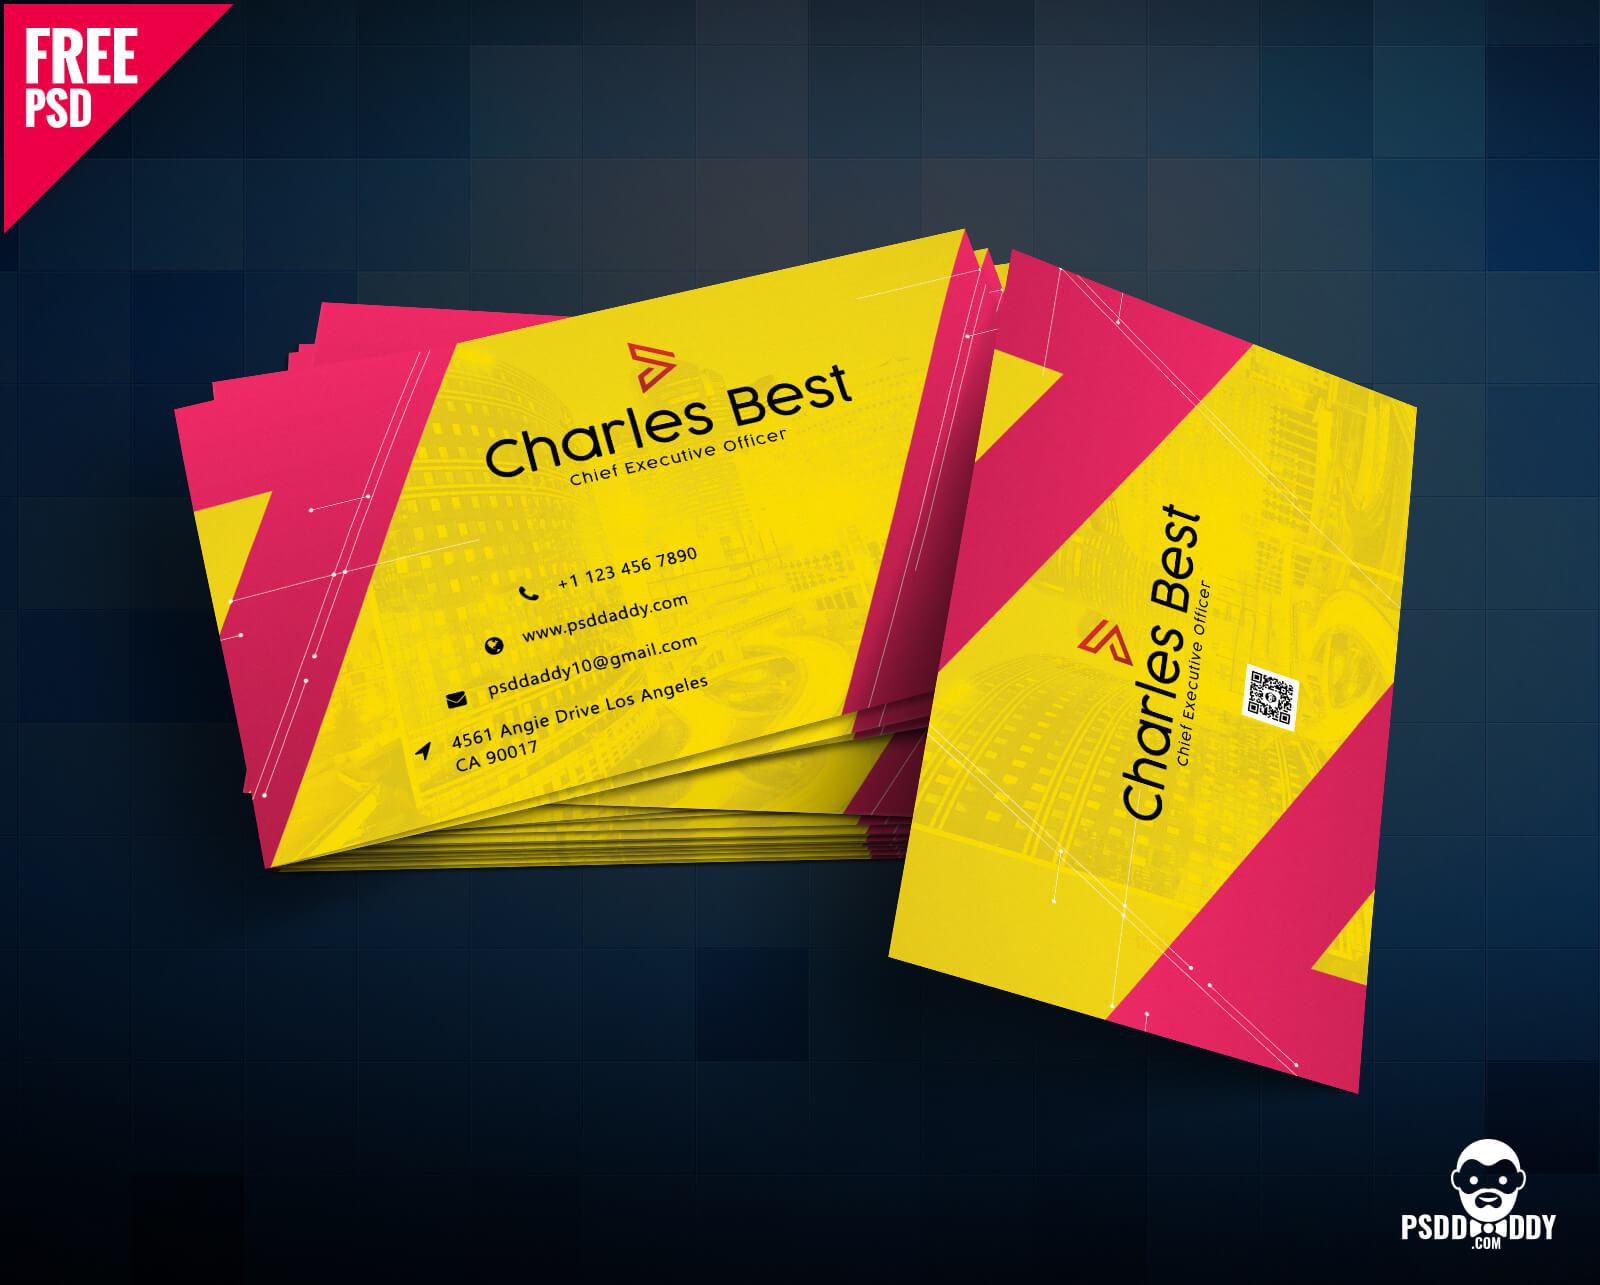 Download] Creative Business Card Free Psd | Psddaddy Intended For Creative Business Card Templates Psd